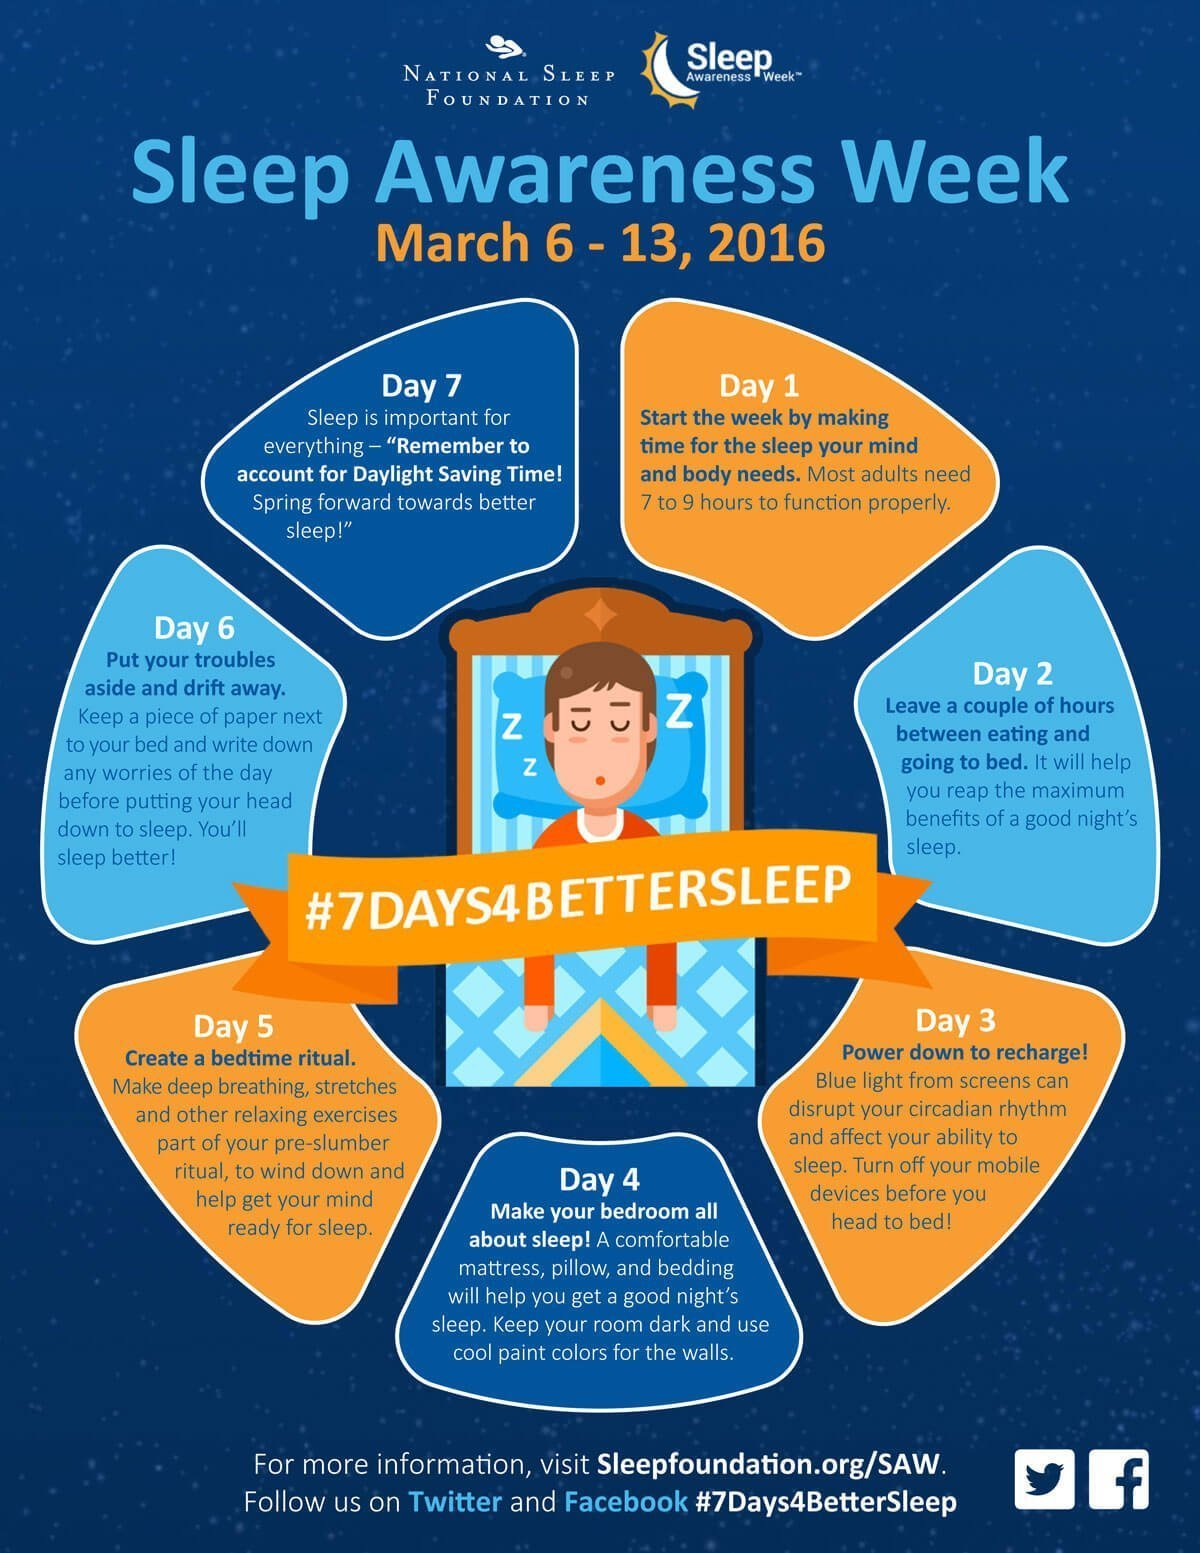 Sleep Awareness Week 2016